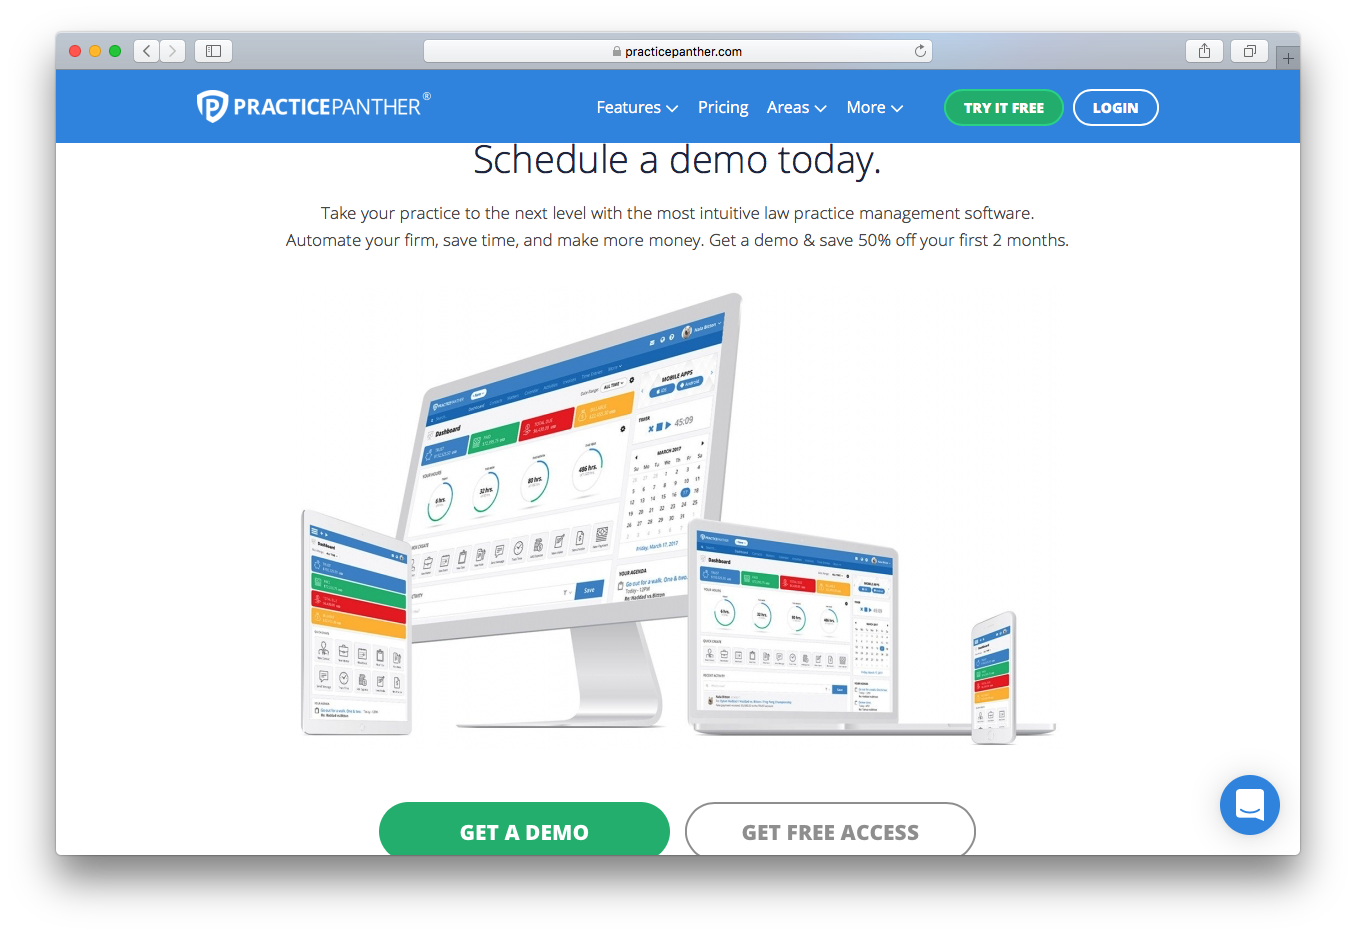 PracticePanther schedule demo free trial access